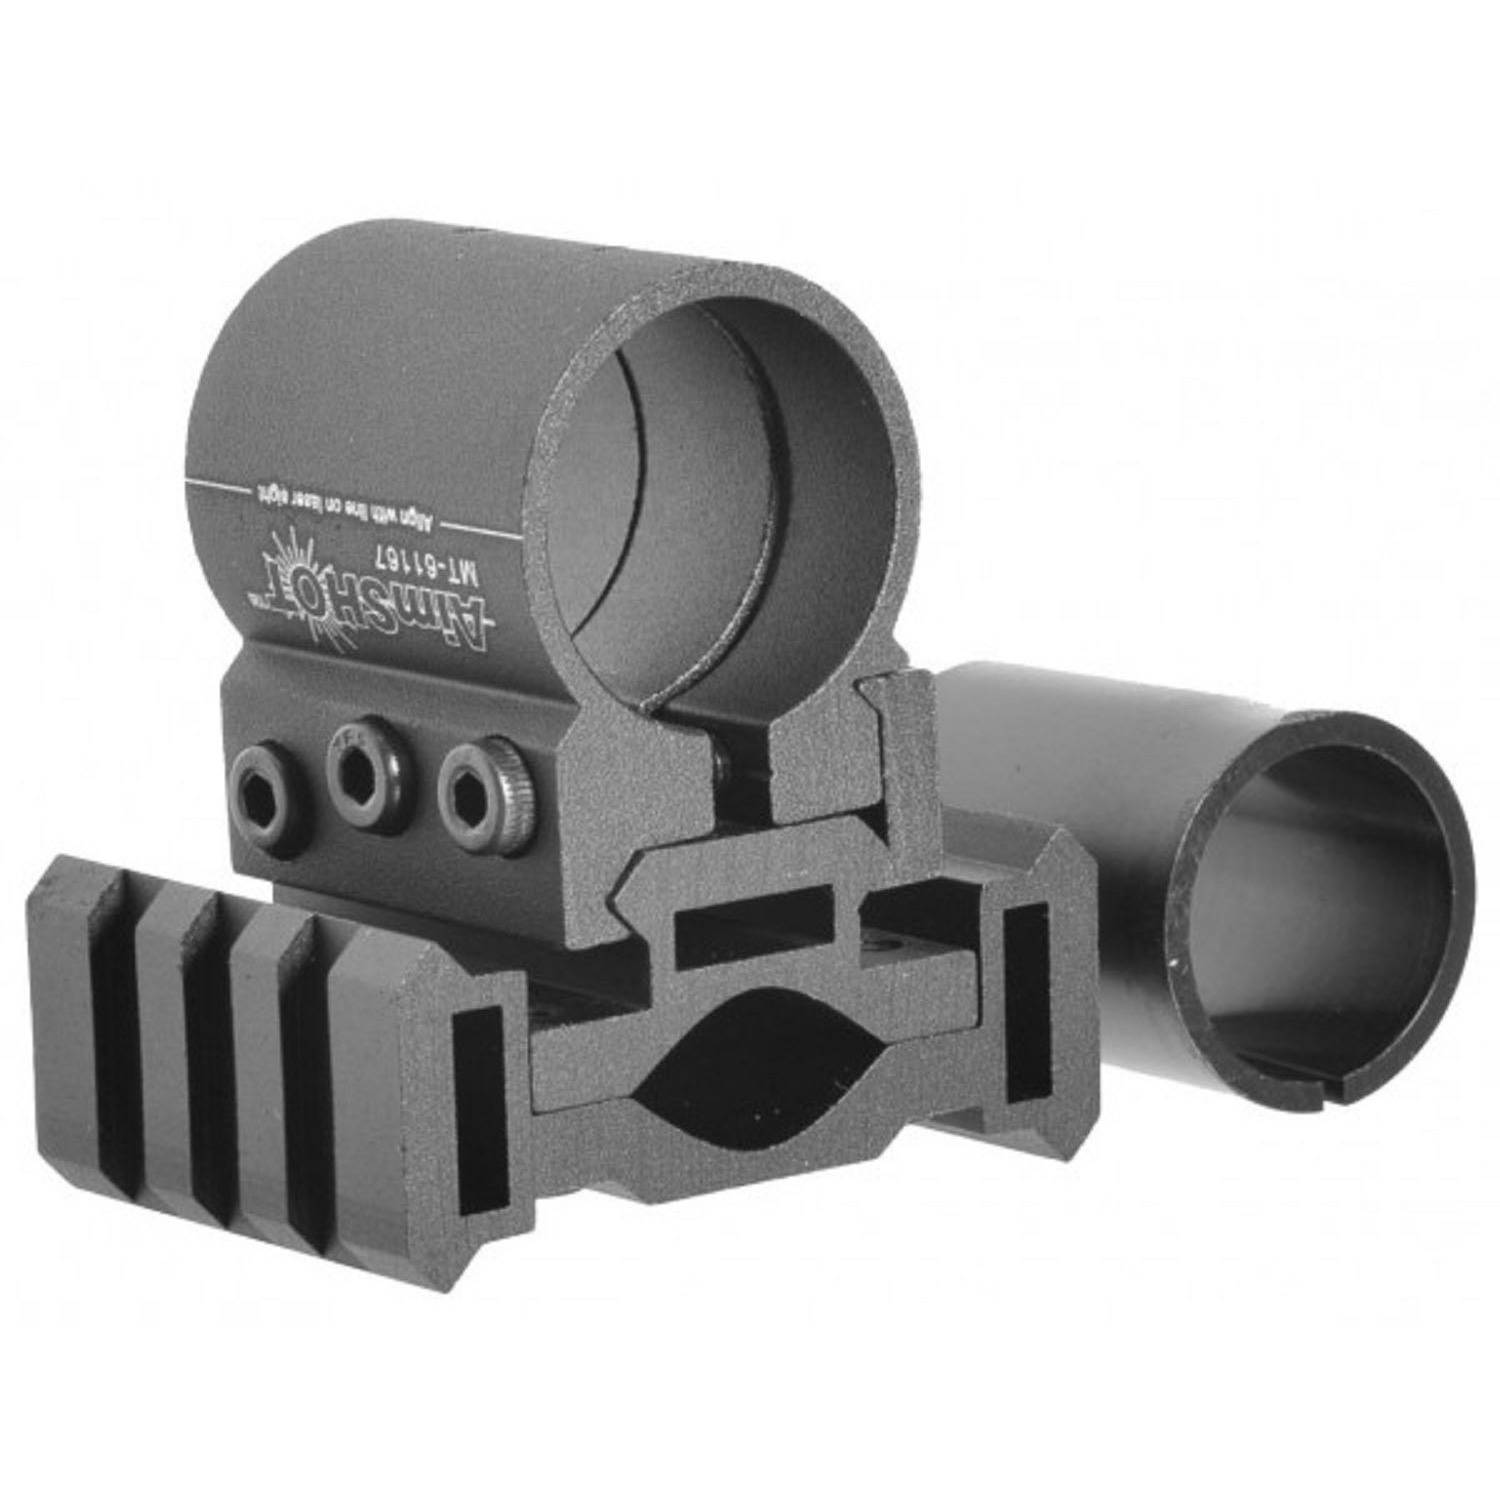 AimSHOT MT61169 Tri-Rail and Rail Mount Combo package